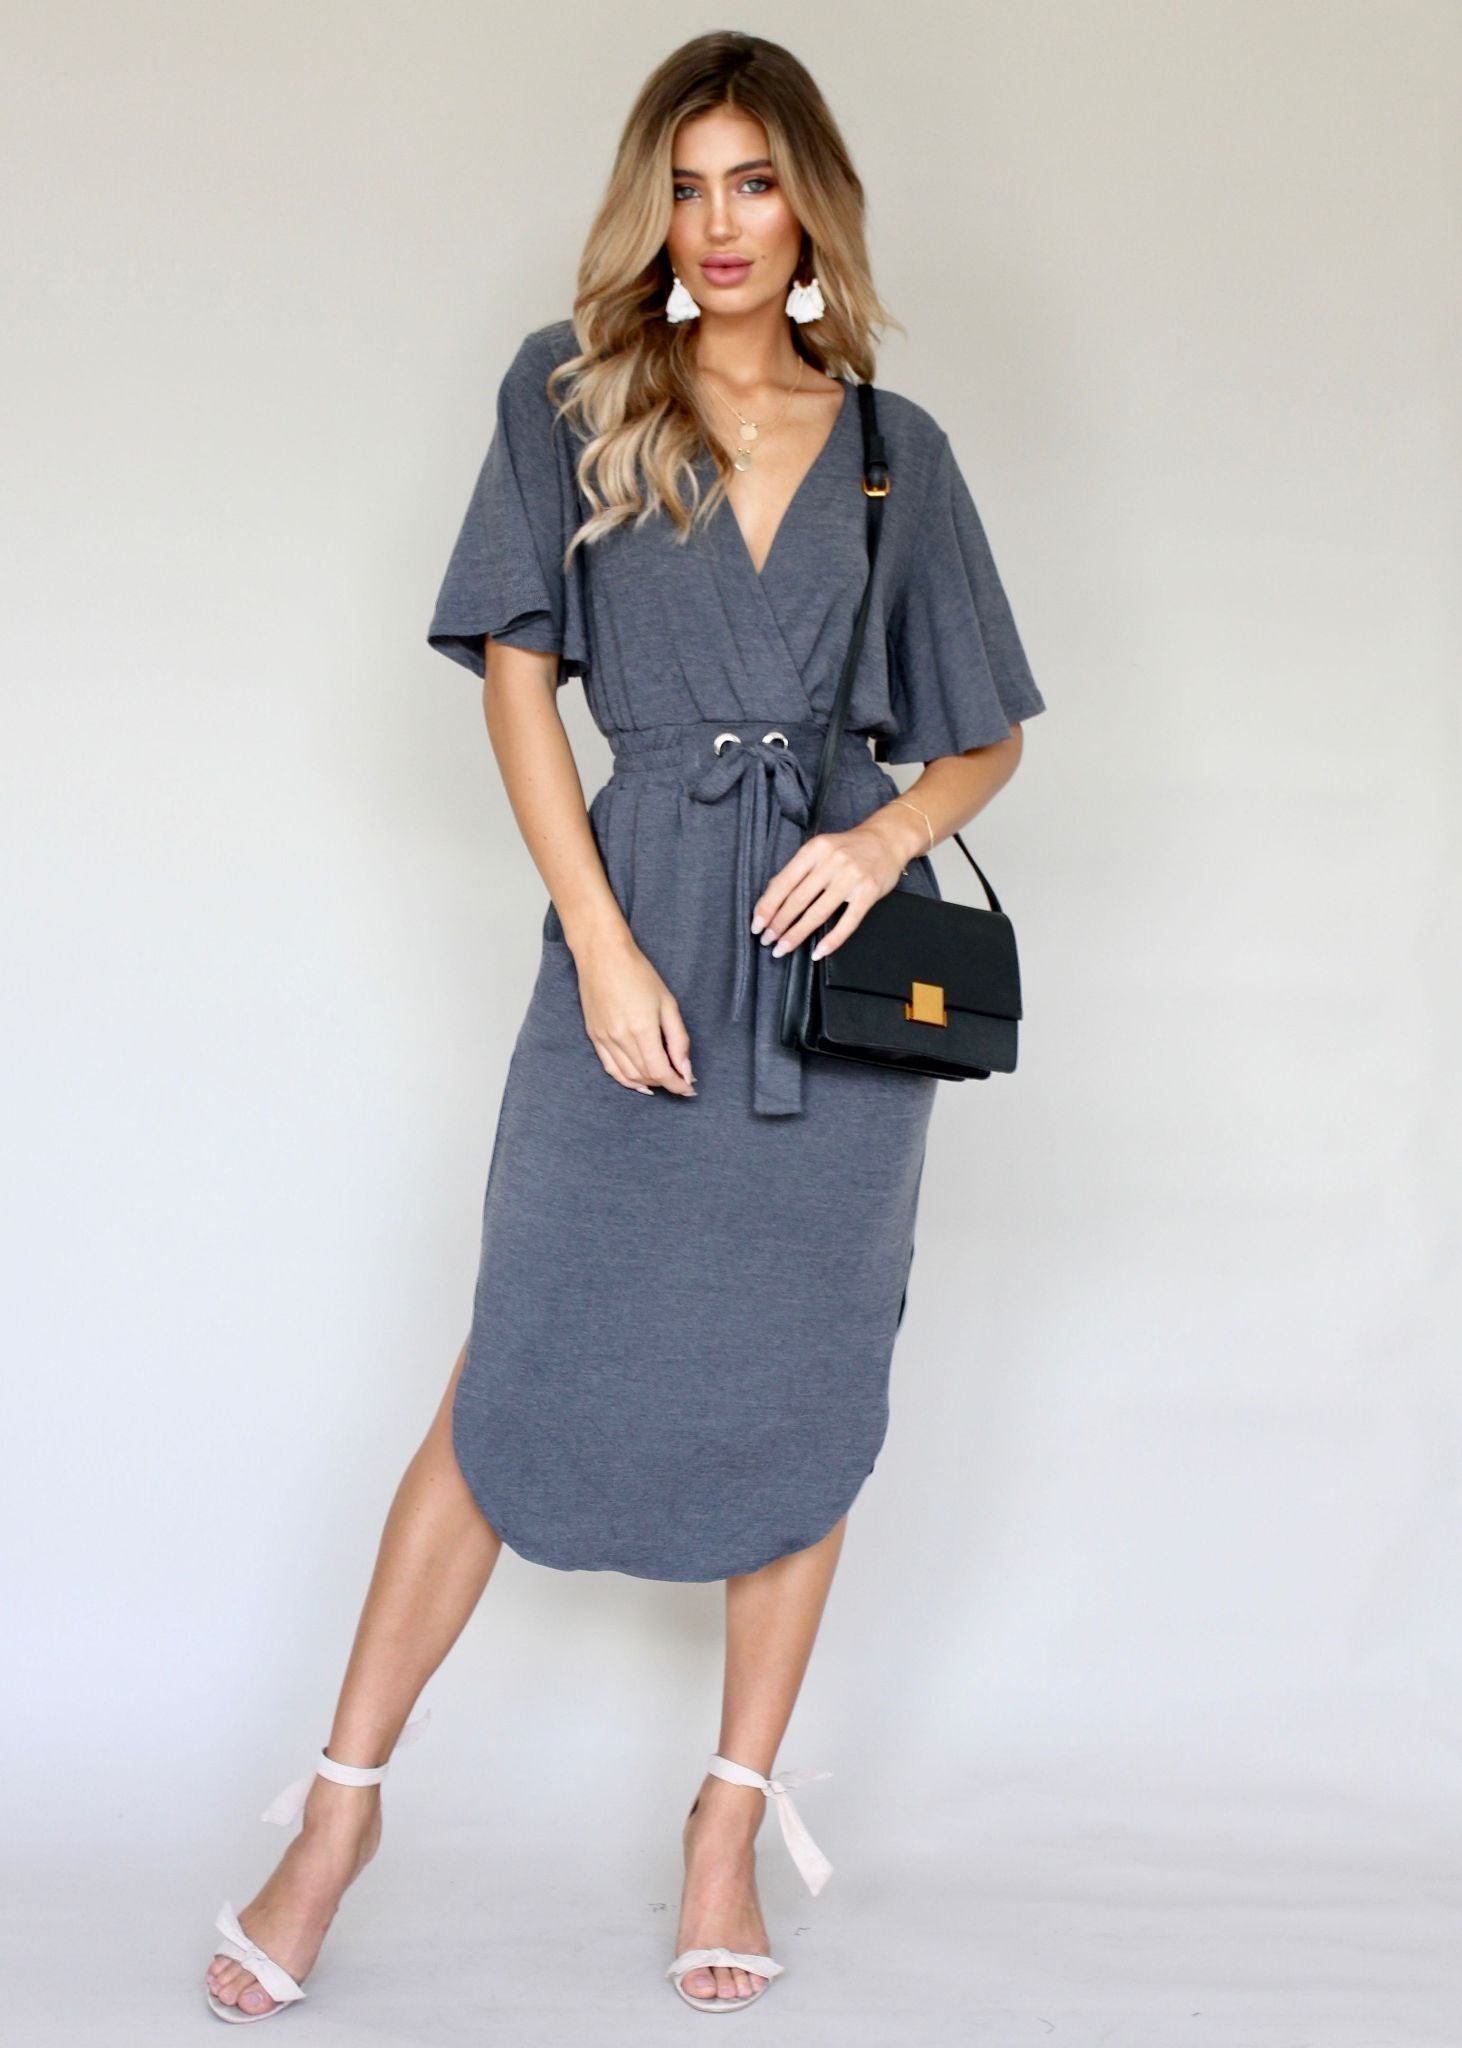 Run & Tell Midi Dress - Charcoal